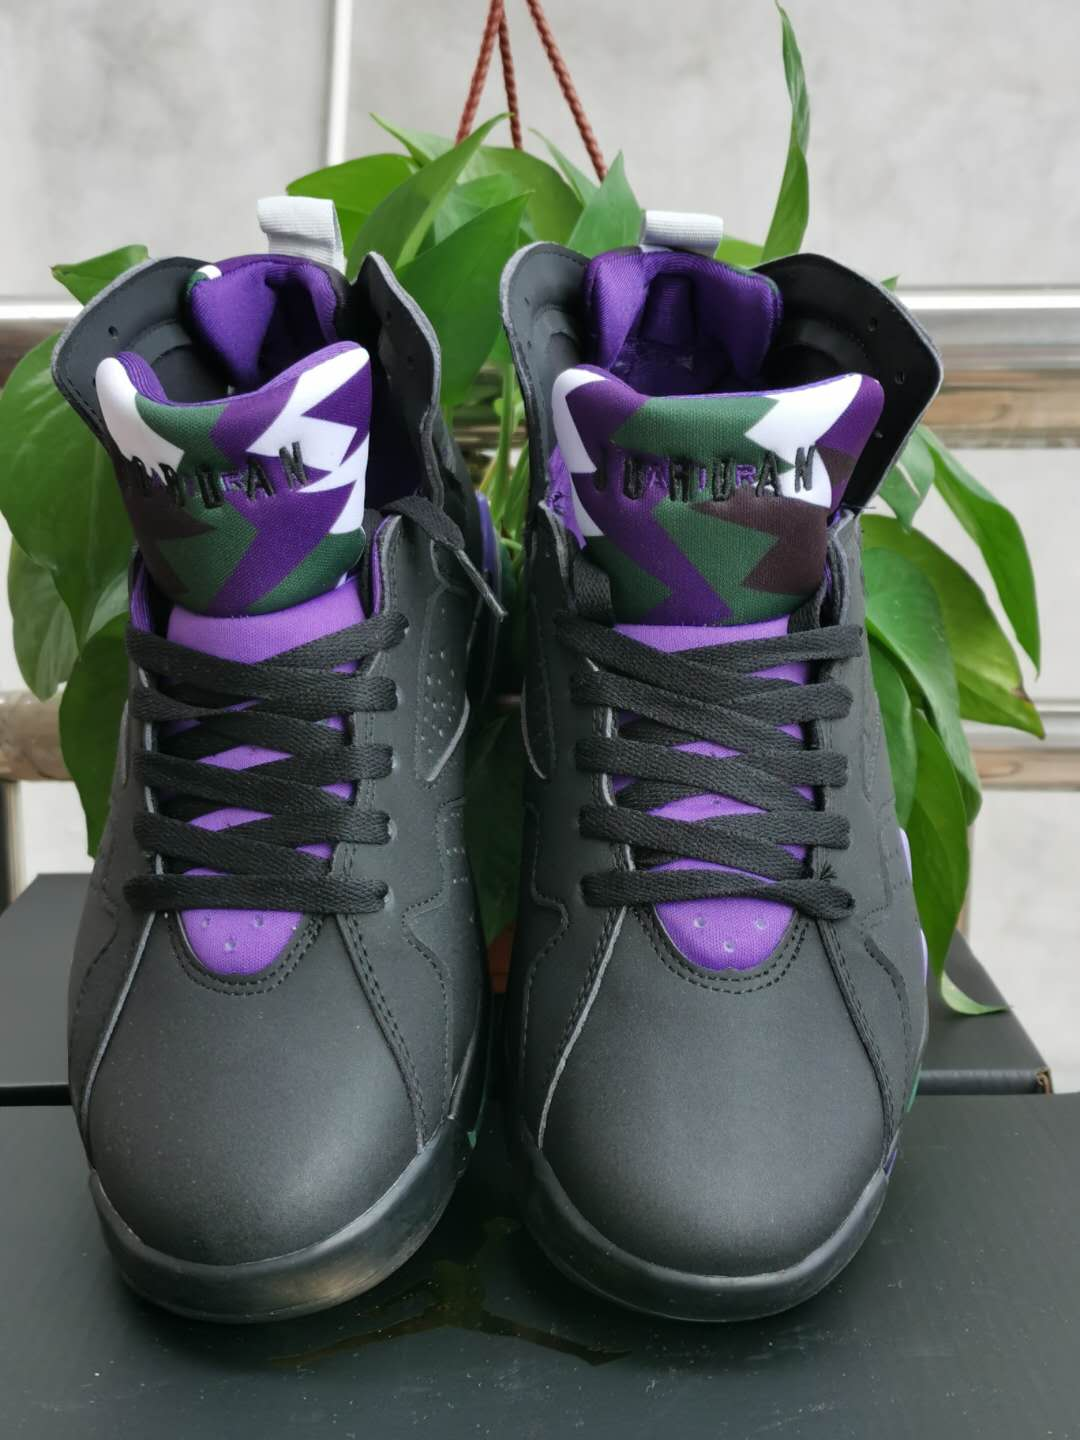 2020 Air Jordan 7 Retro Black Purple Shoes For Women